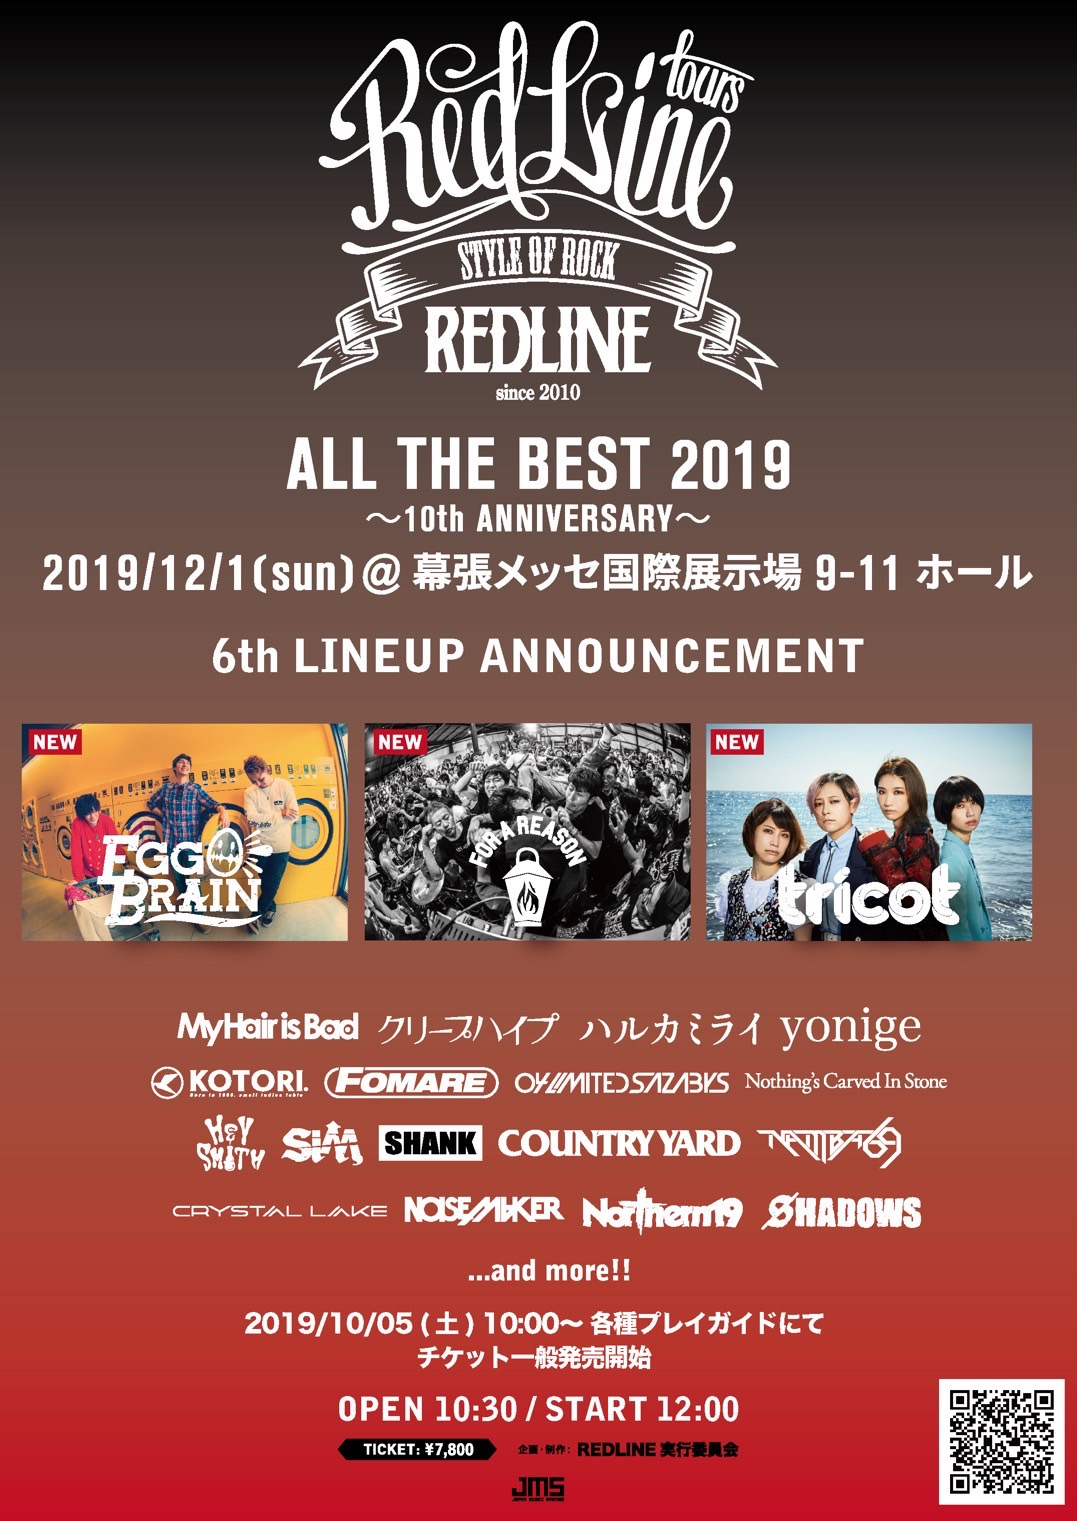 REDLINE ALL THE BEST 2019